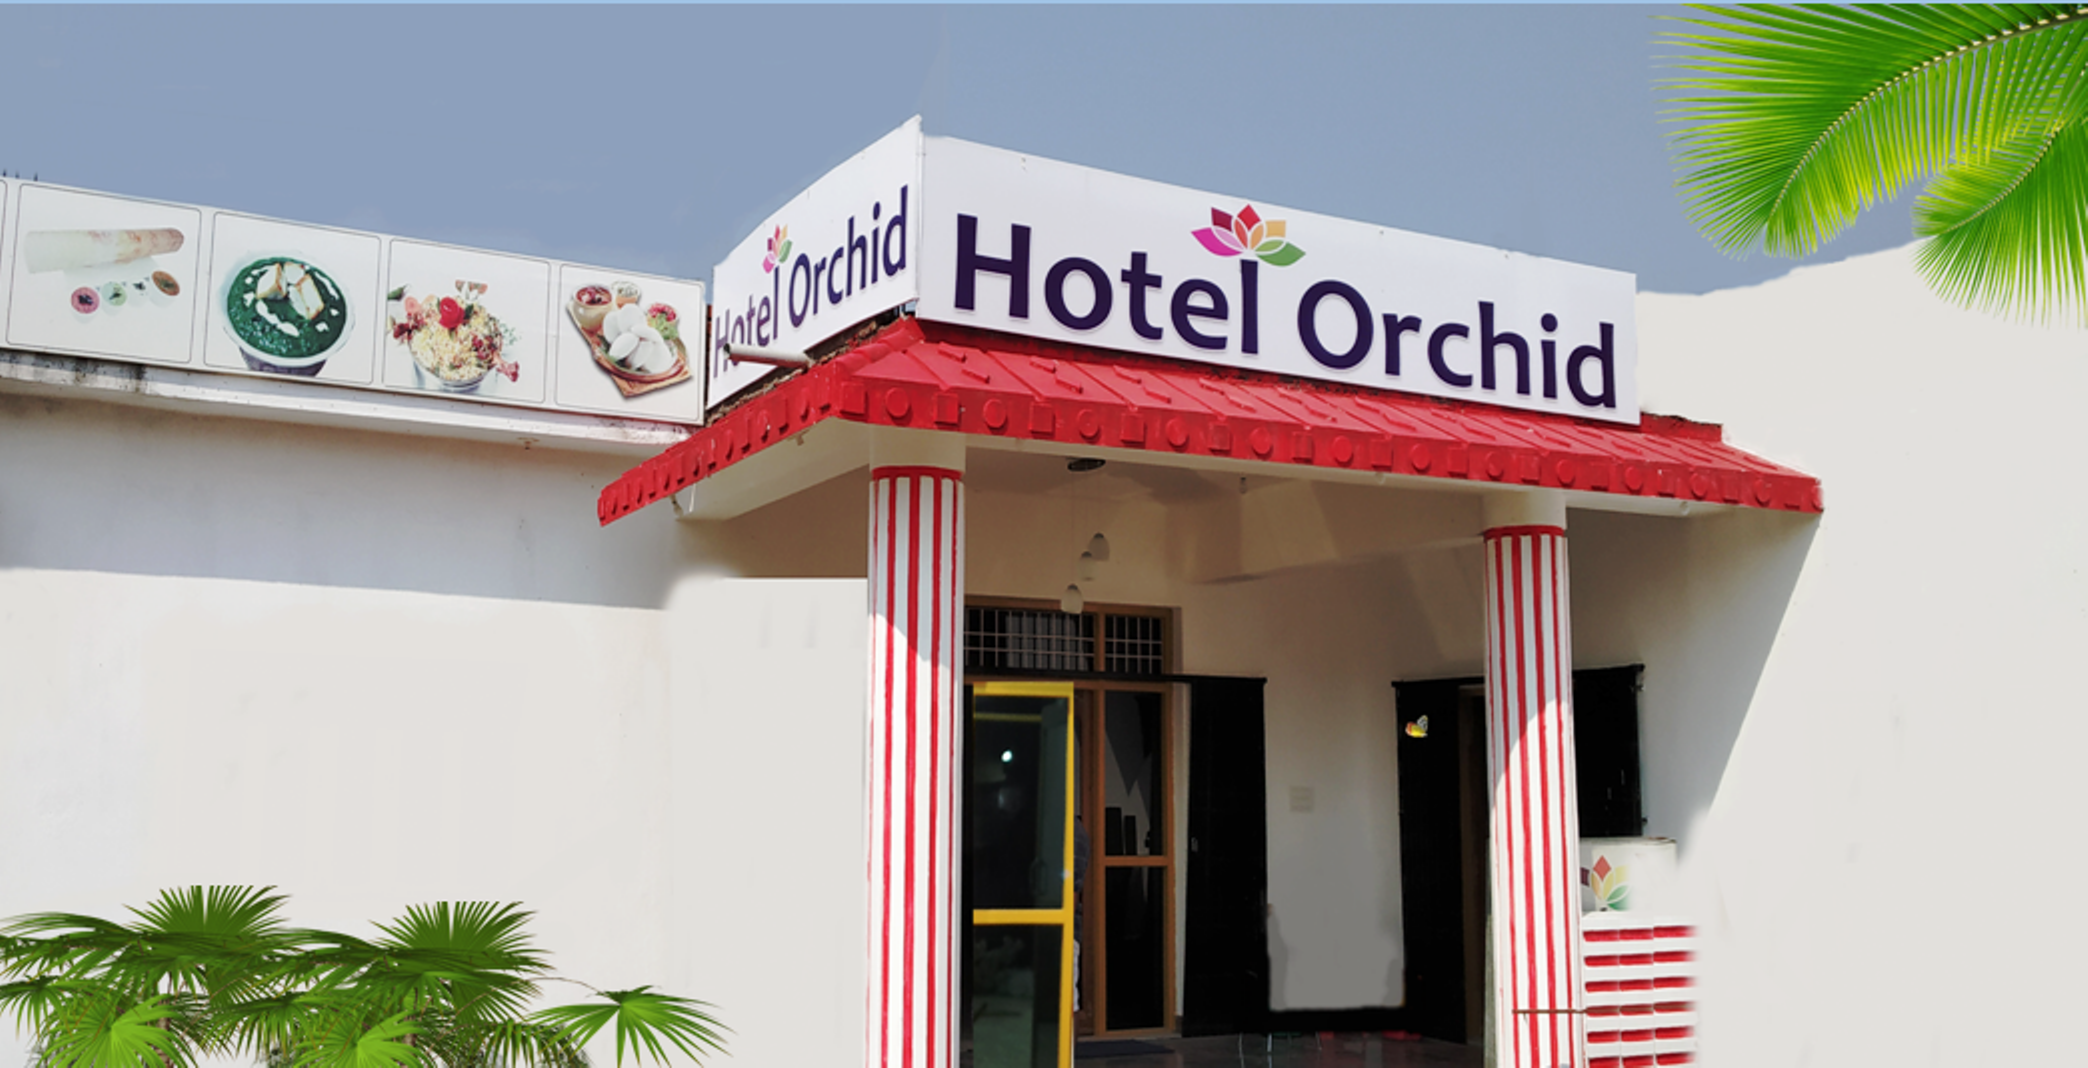 Large Photograph of Hotel Orchid Bodhygaya located in Bodhgaya